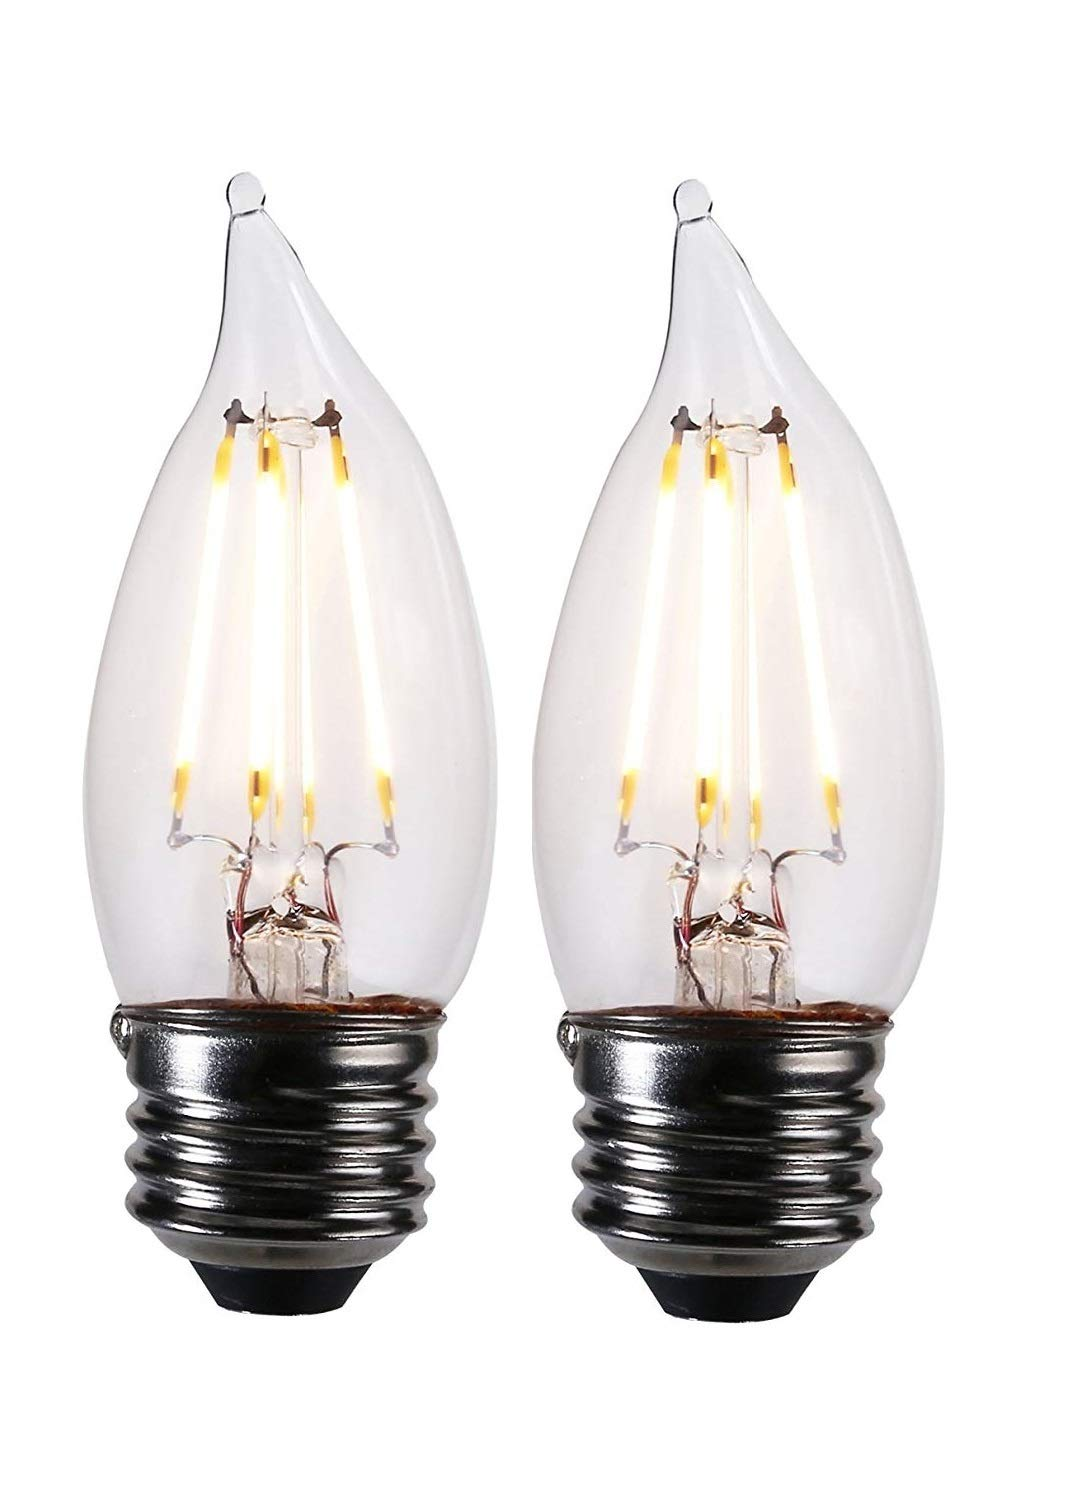 Amazing light bulbs